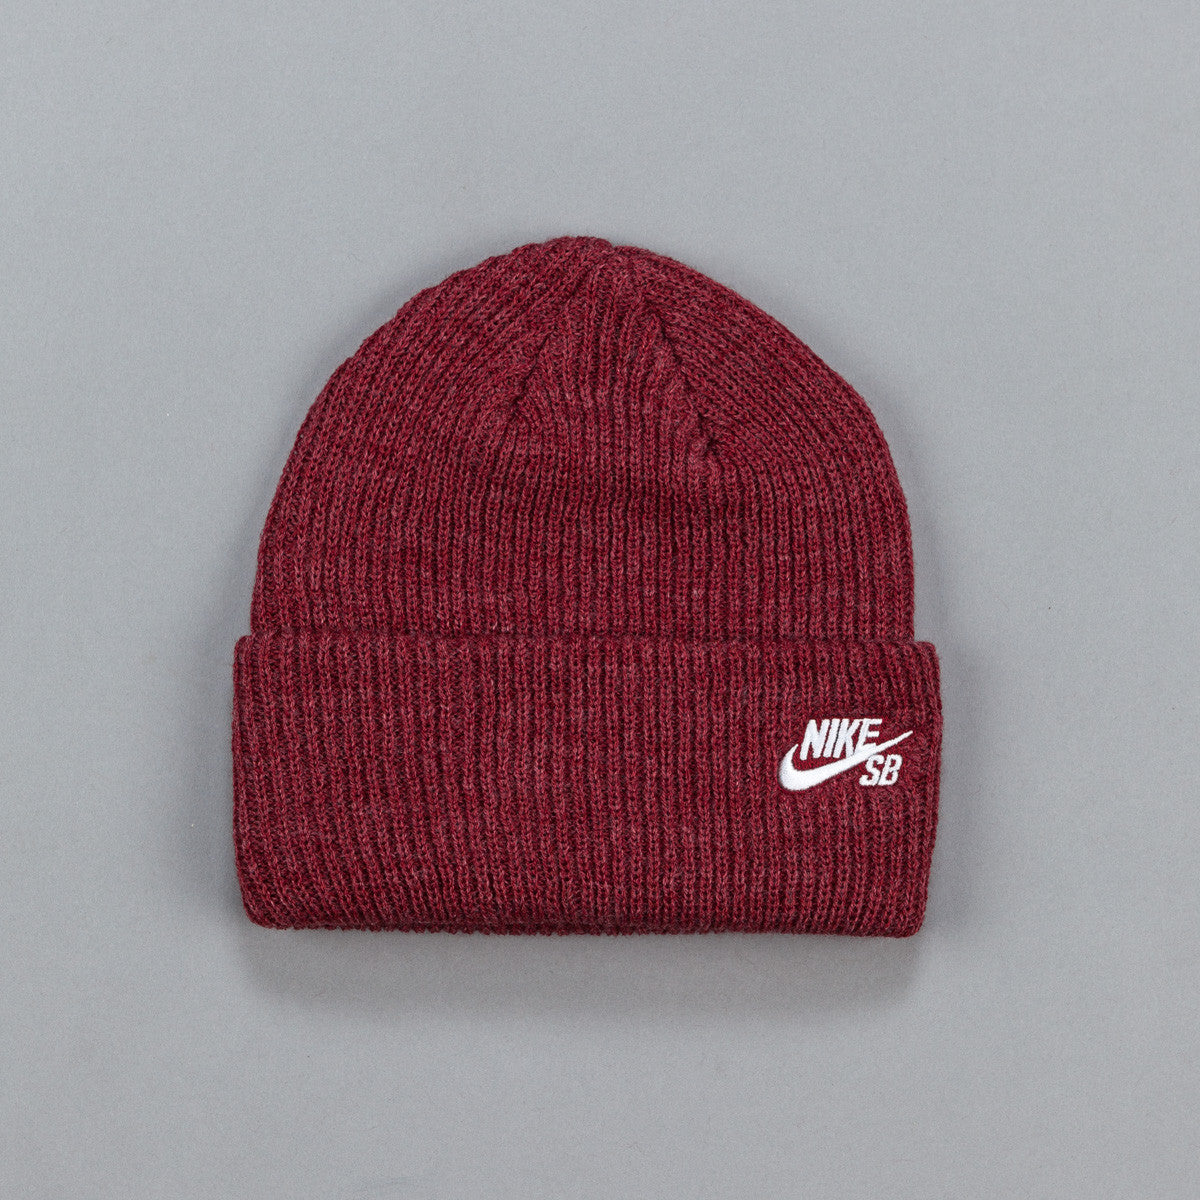 Nike SB Fisherman Beanie Light Gym Red / Black